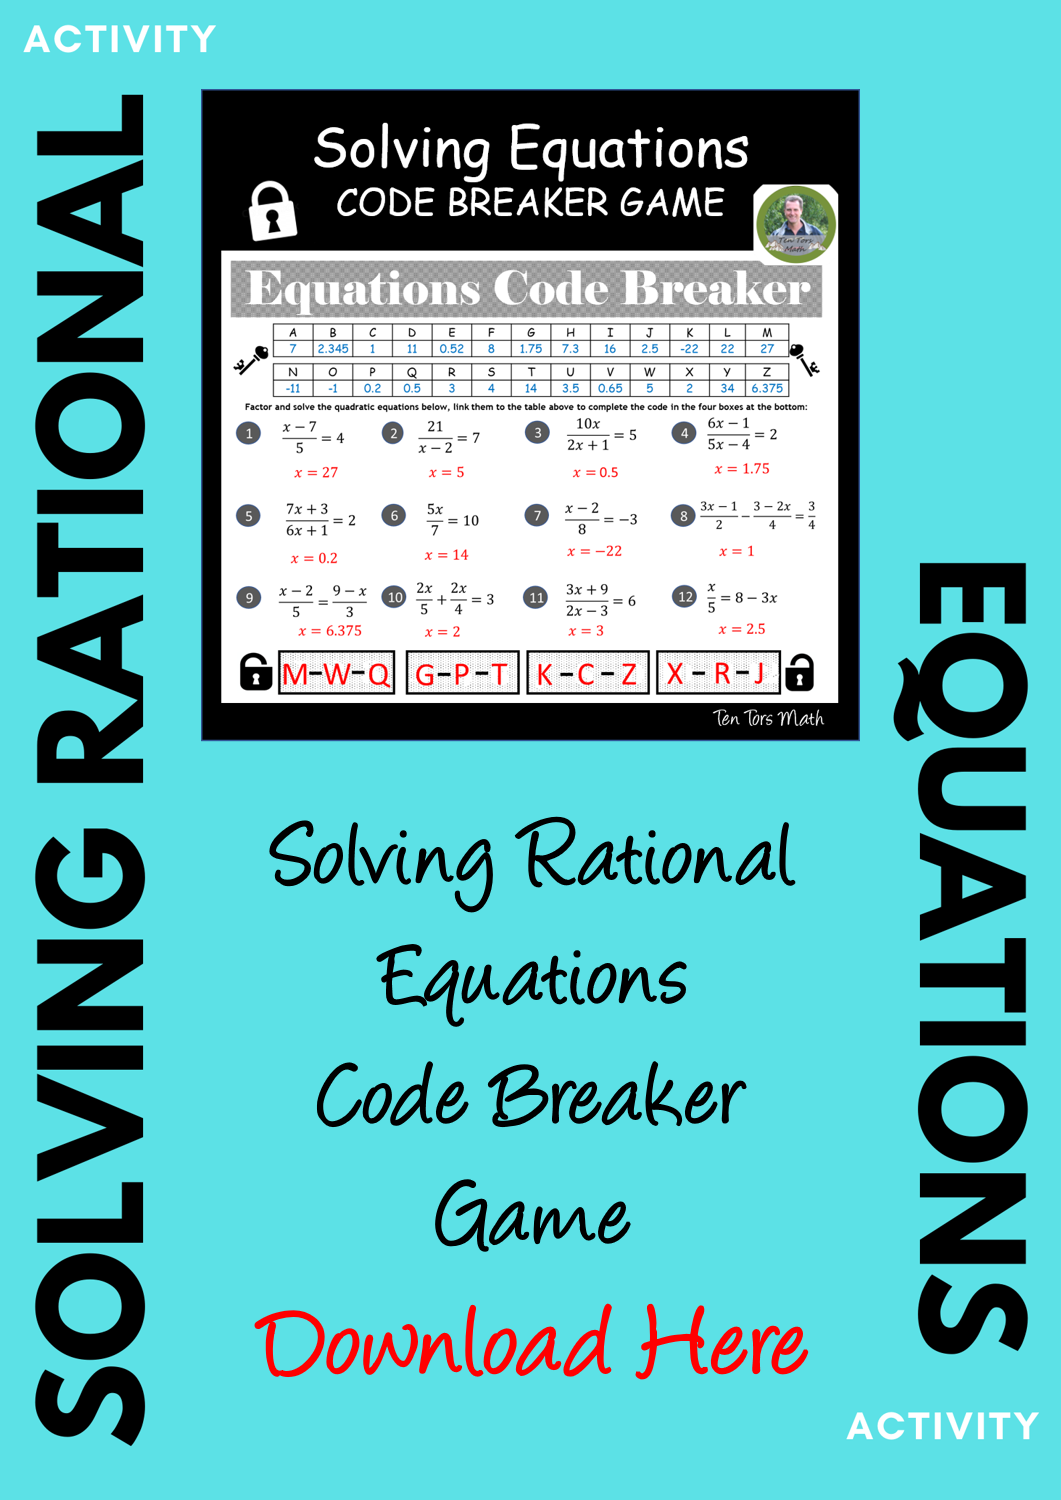 Solving Rational Equations Code Breaker